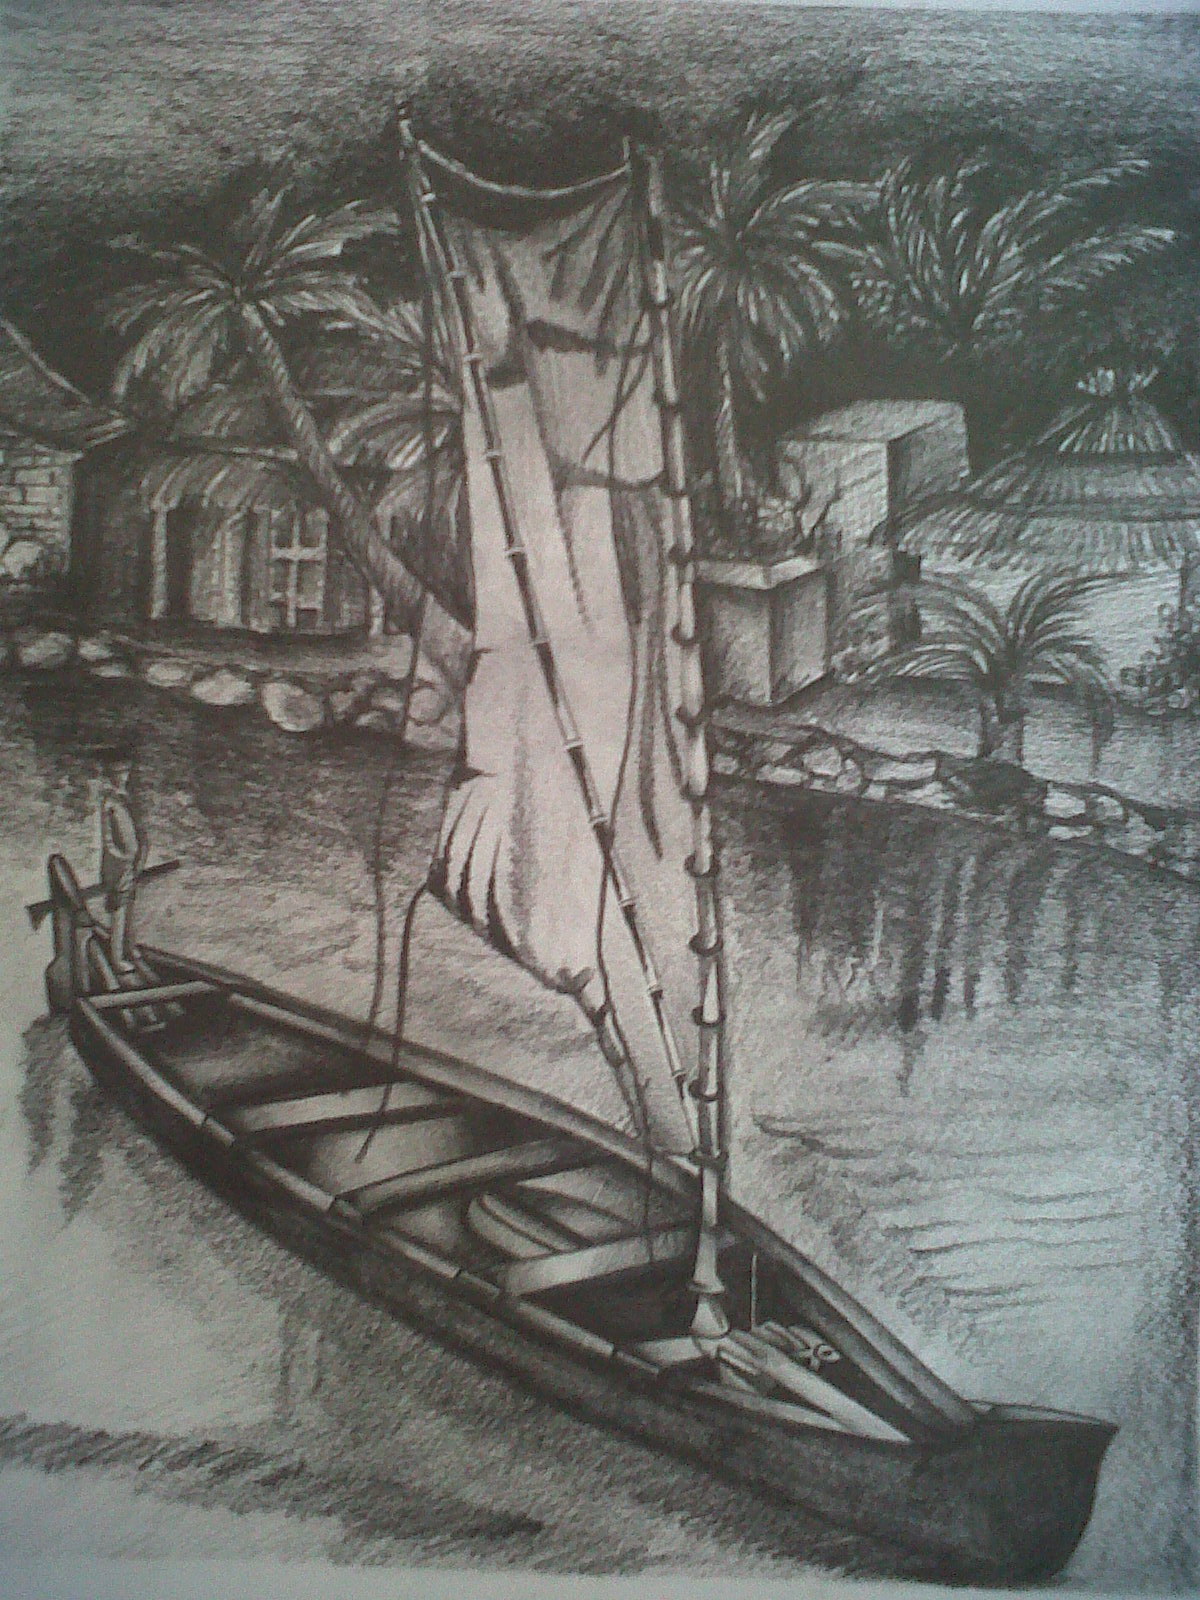 Drawn scenery shading Amour Natural Scenery Pencil Drawing